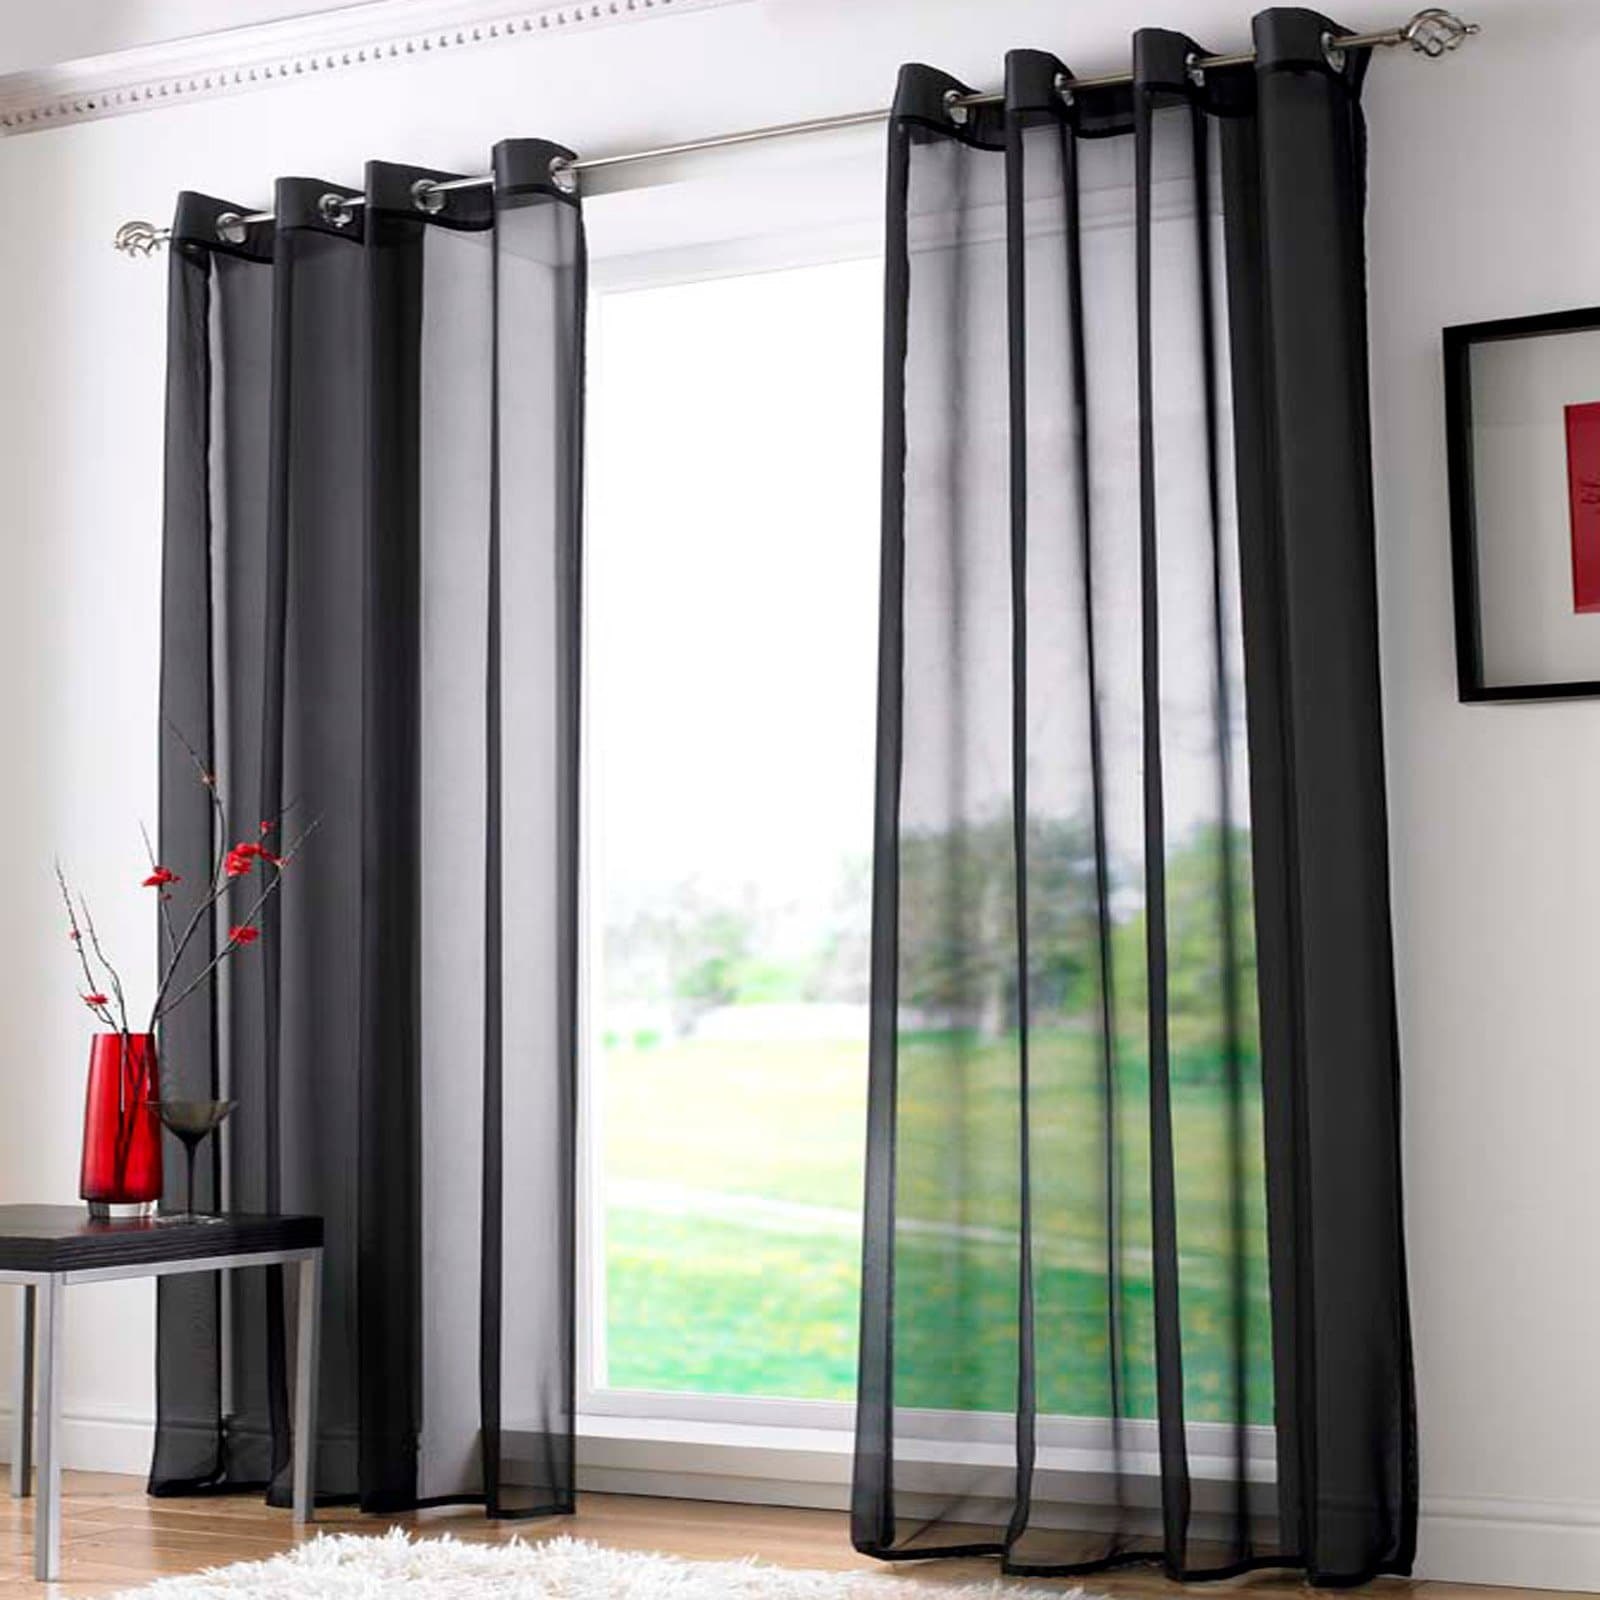 Plain Eyelet Voile Curtain Panels Black -  - Ideal Textiles